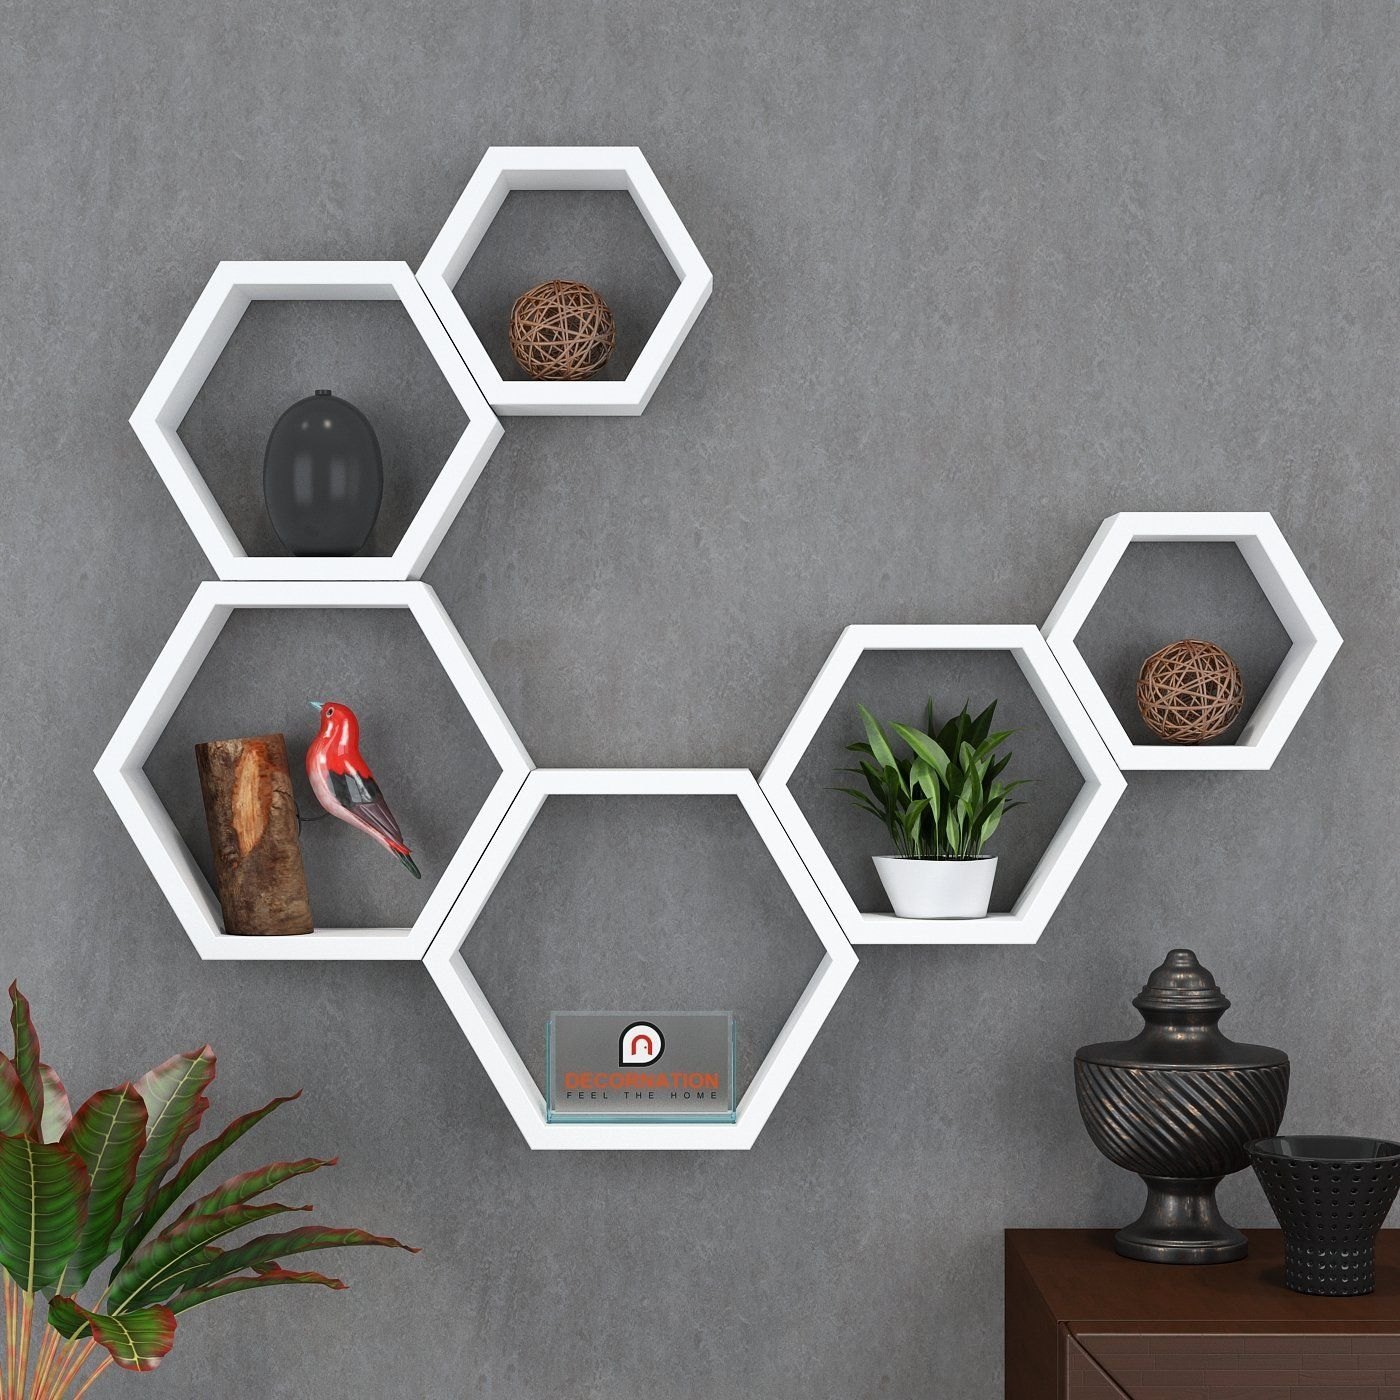 Add A Decorative Display Area To Most Any Room With Set Of 6